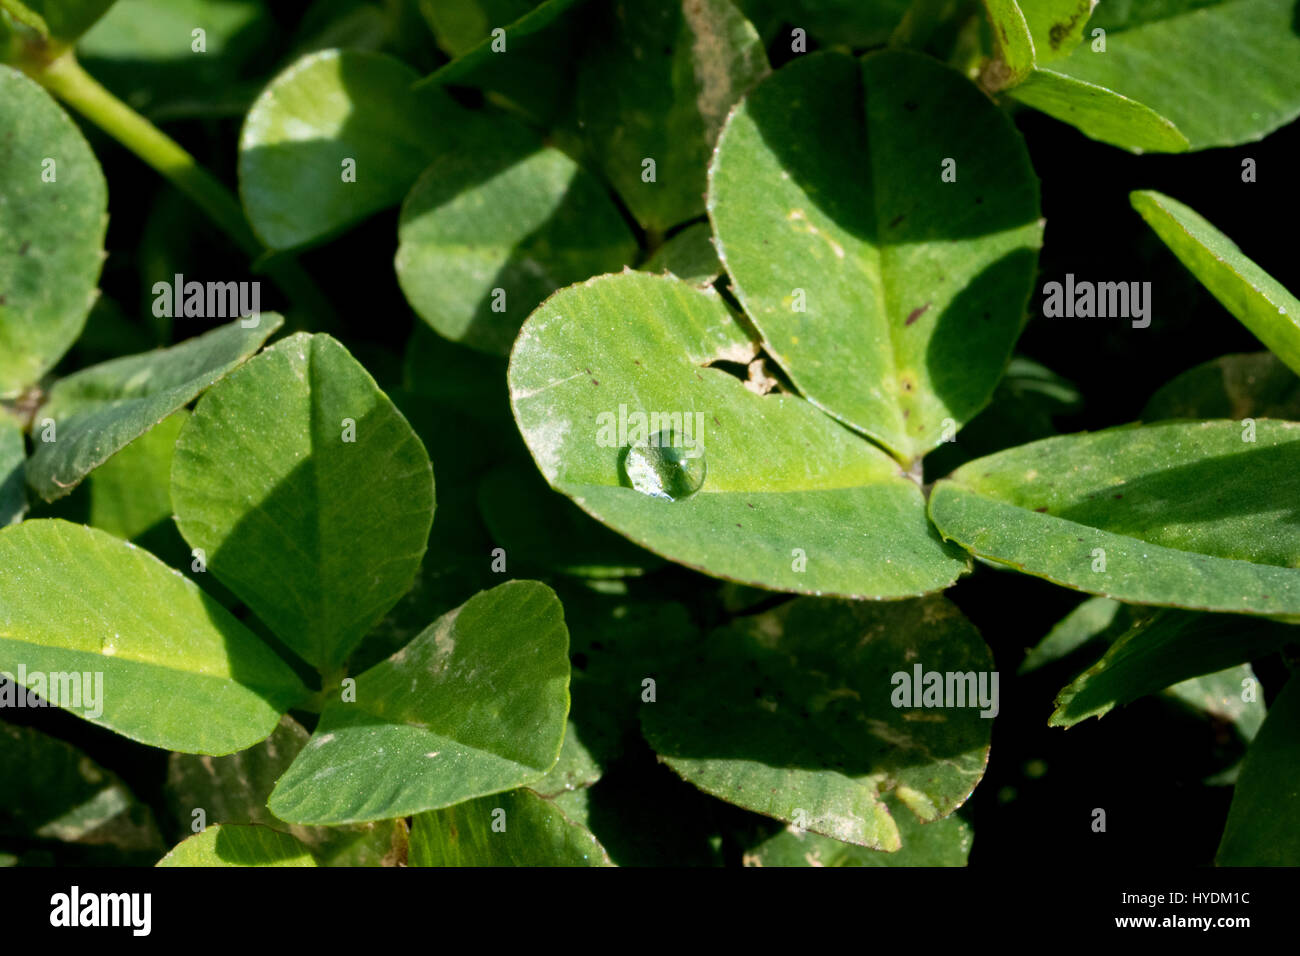 clovers on the garden. there is waterdrop on the leaf. - Stock Image